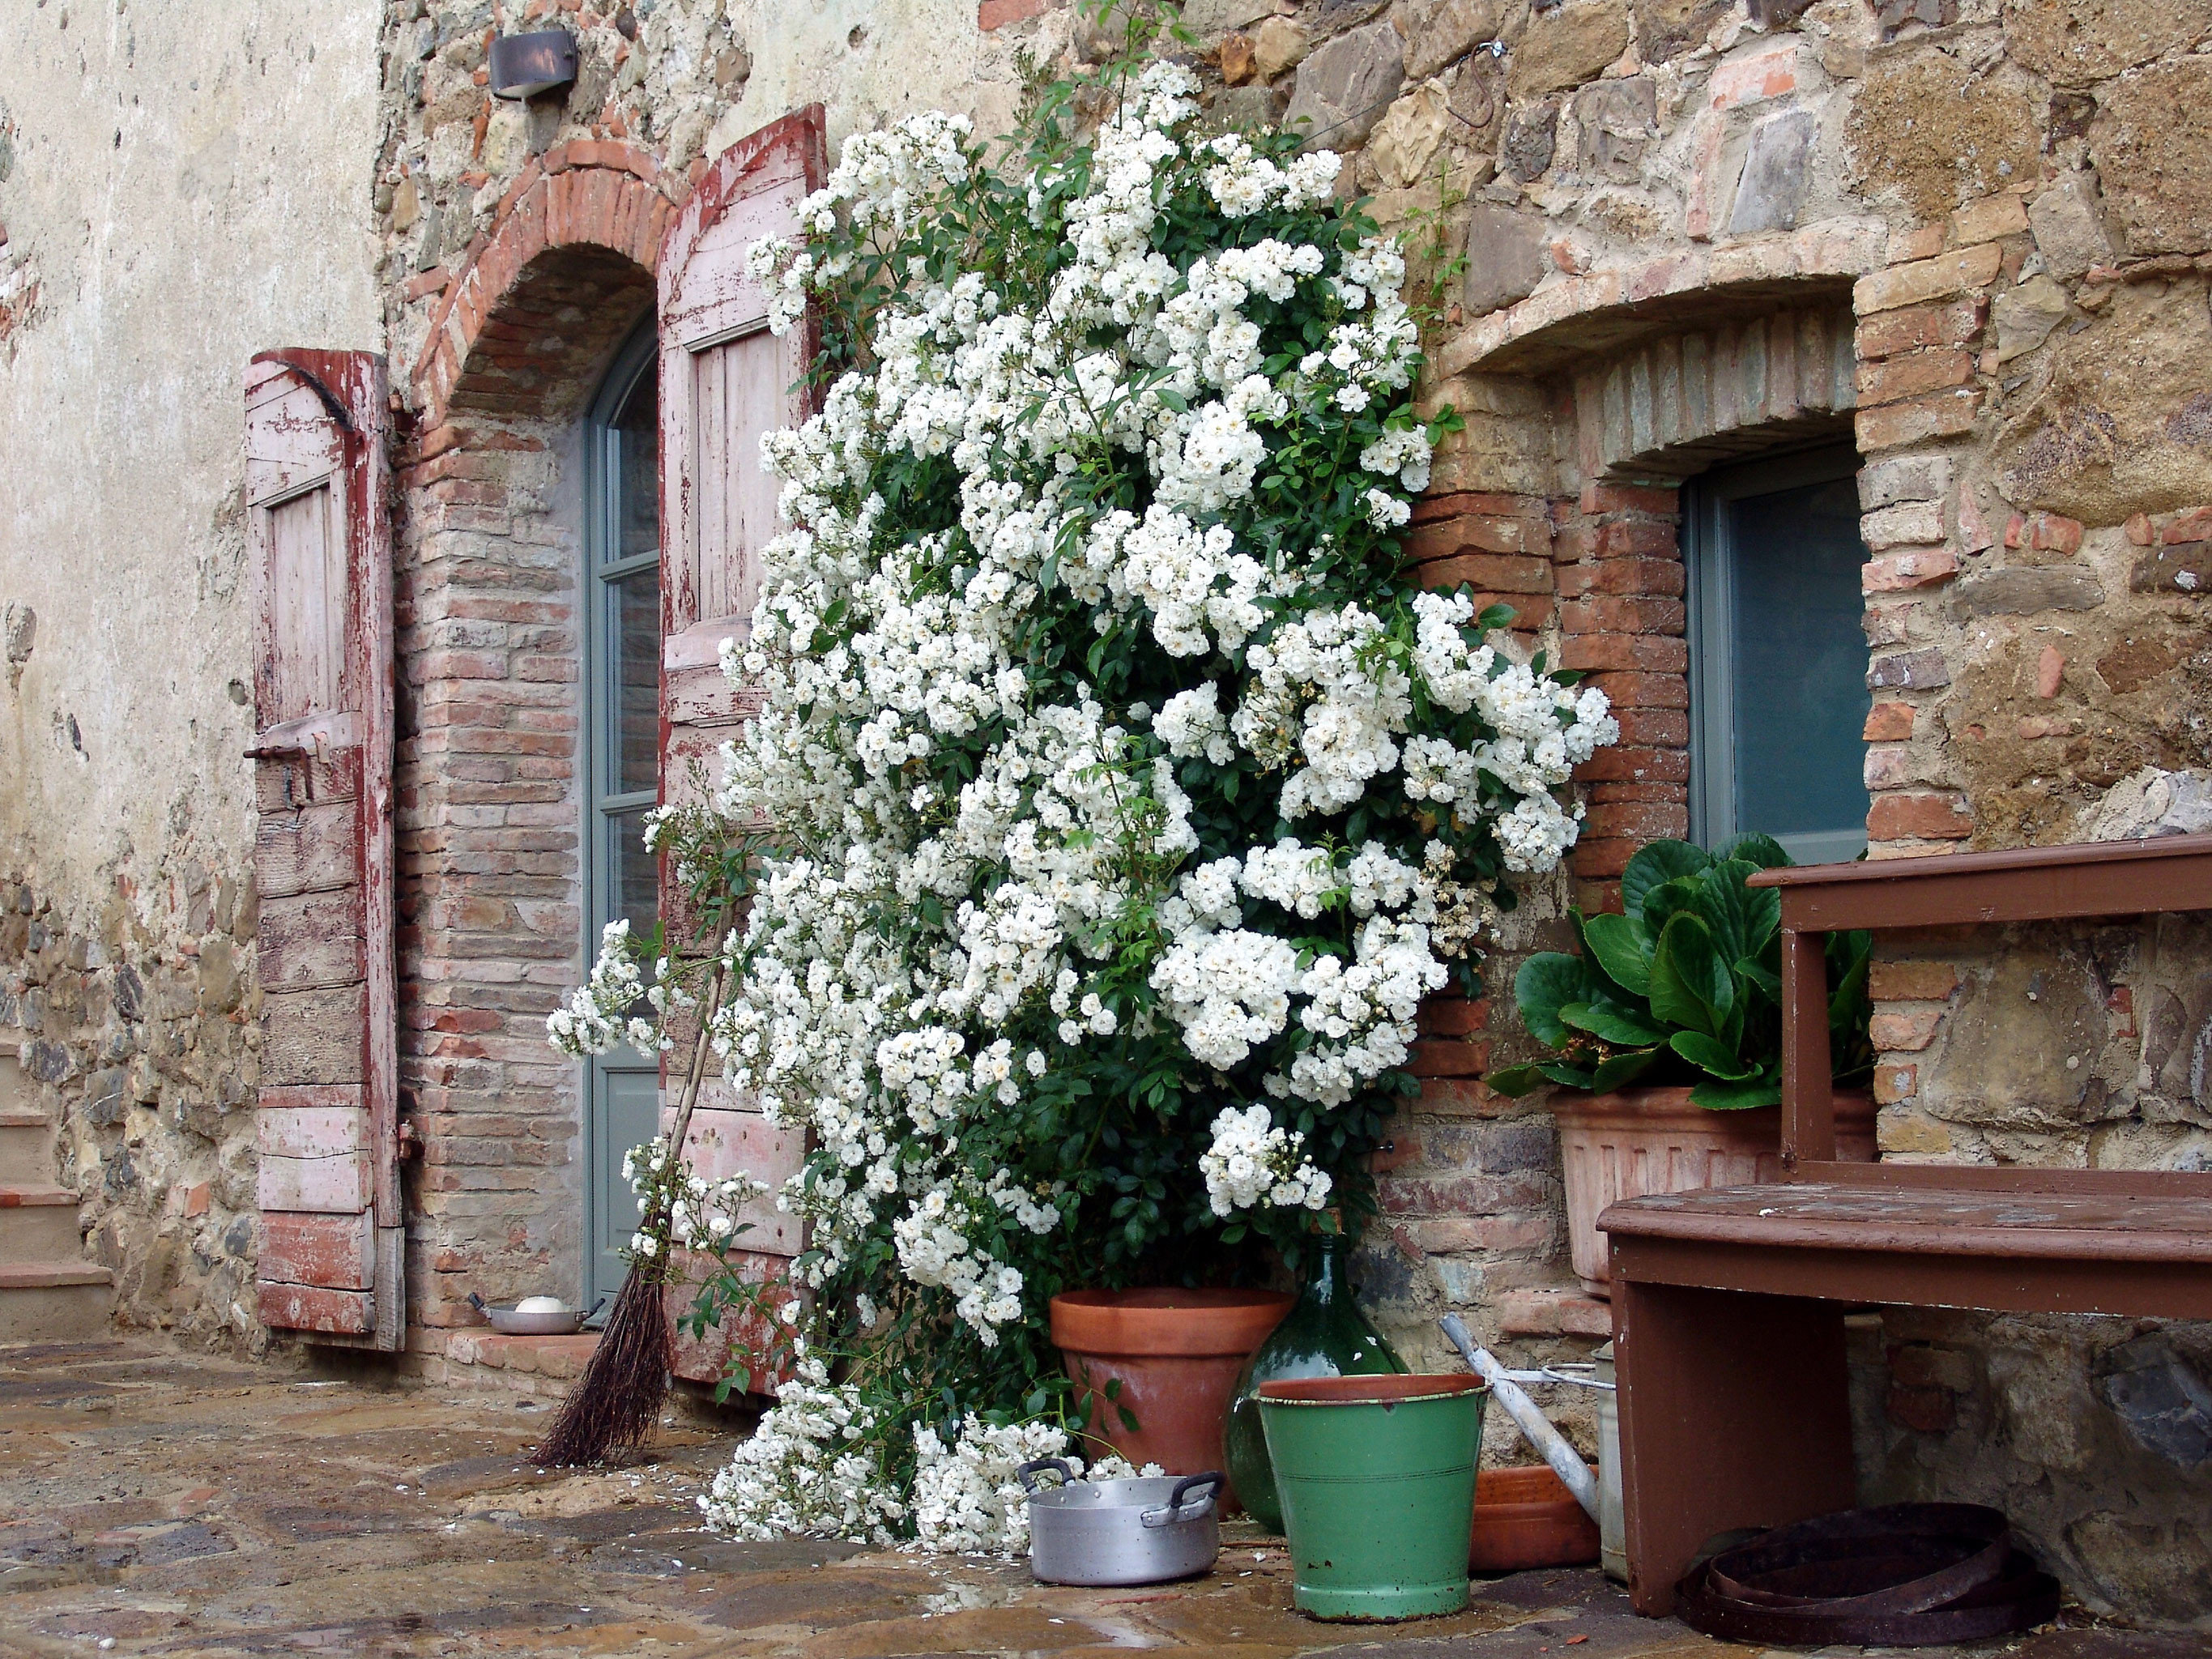 Exterior Garden Grounds Lounge building flower plant floristry old spring stone land plant cottage blossom flowering plant Courtyard